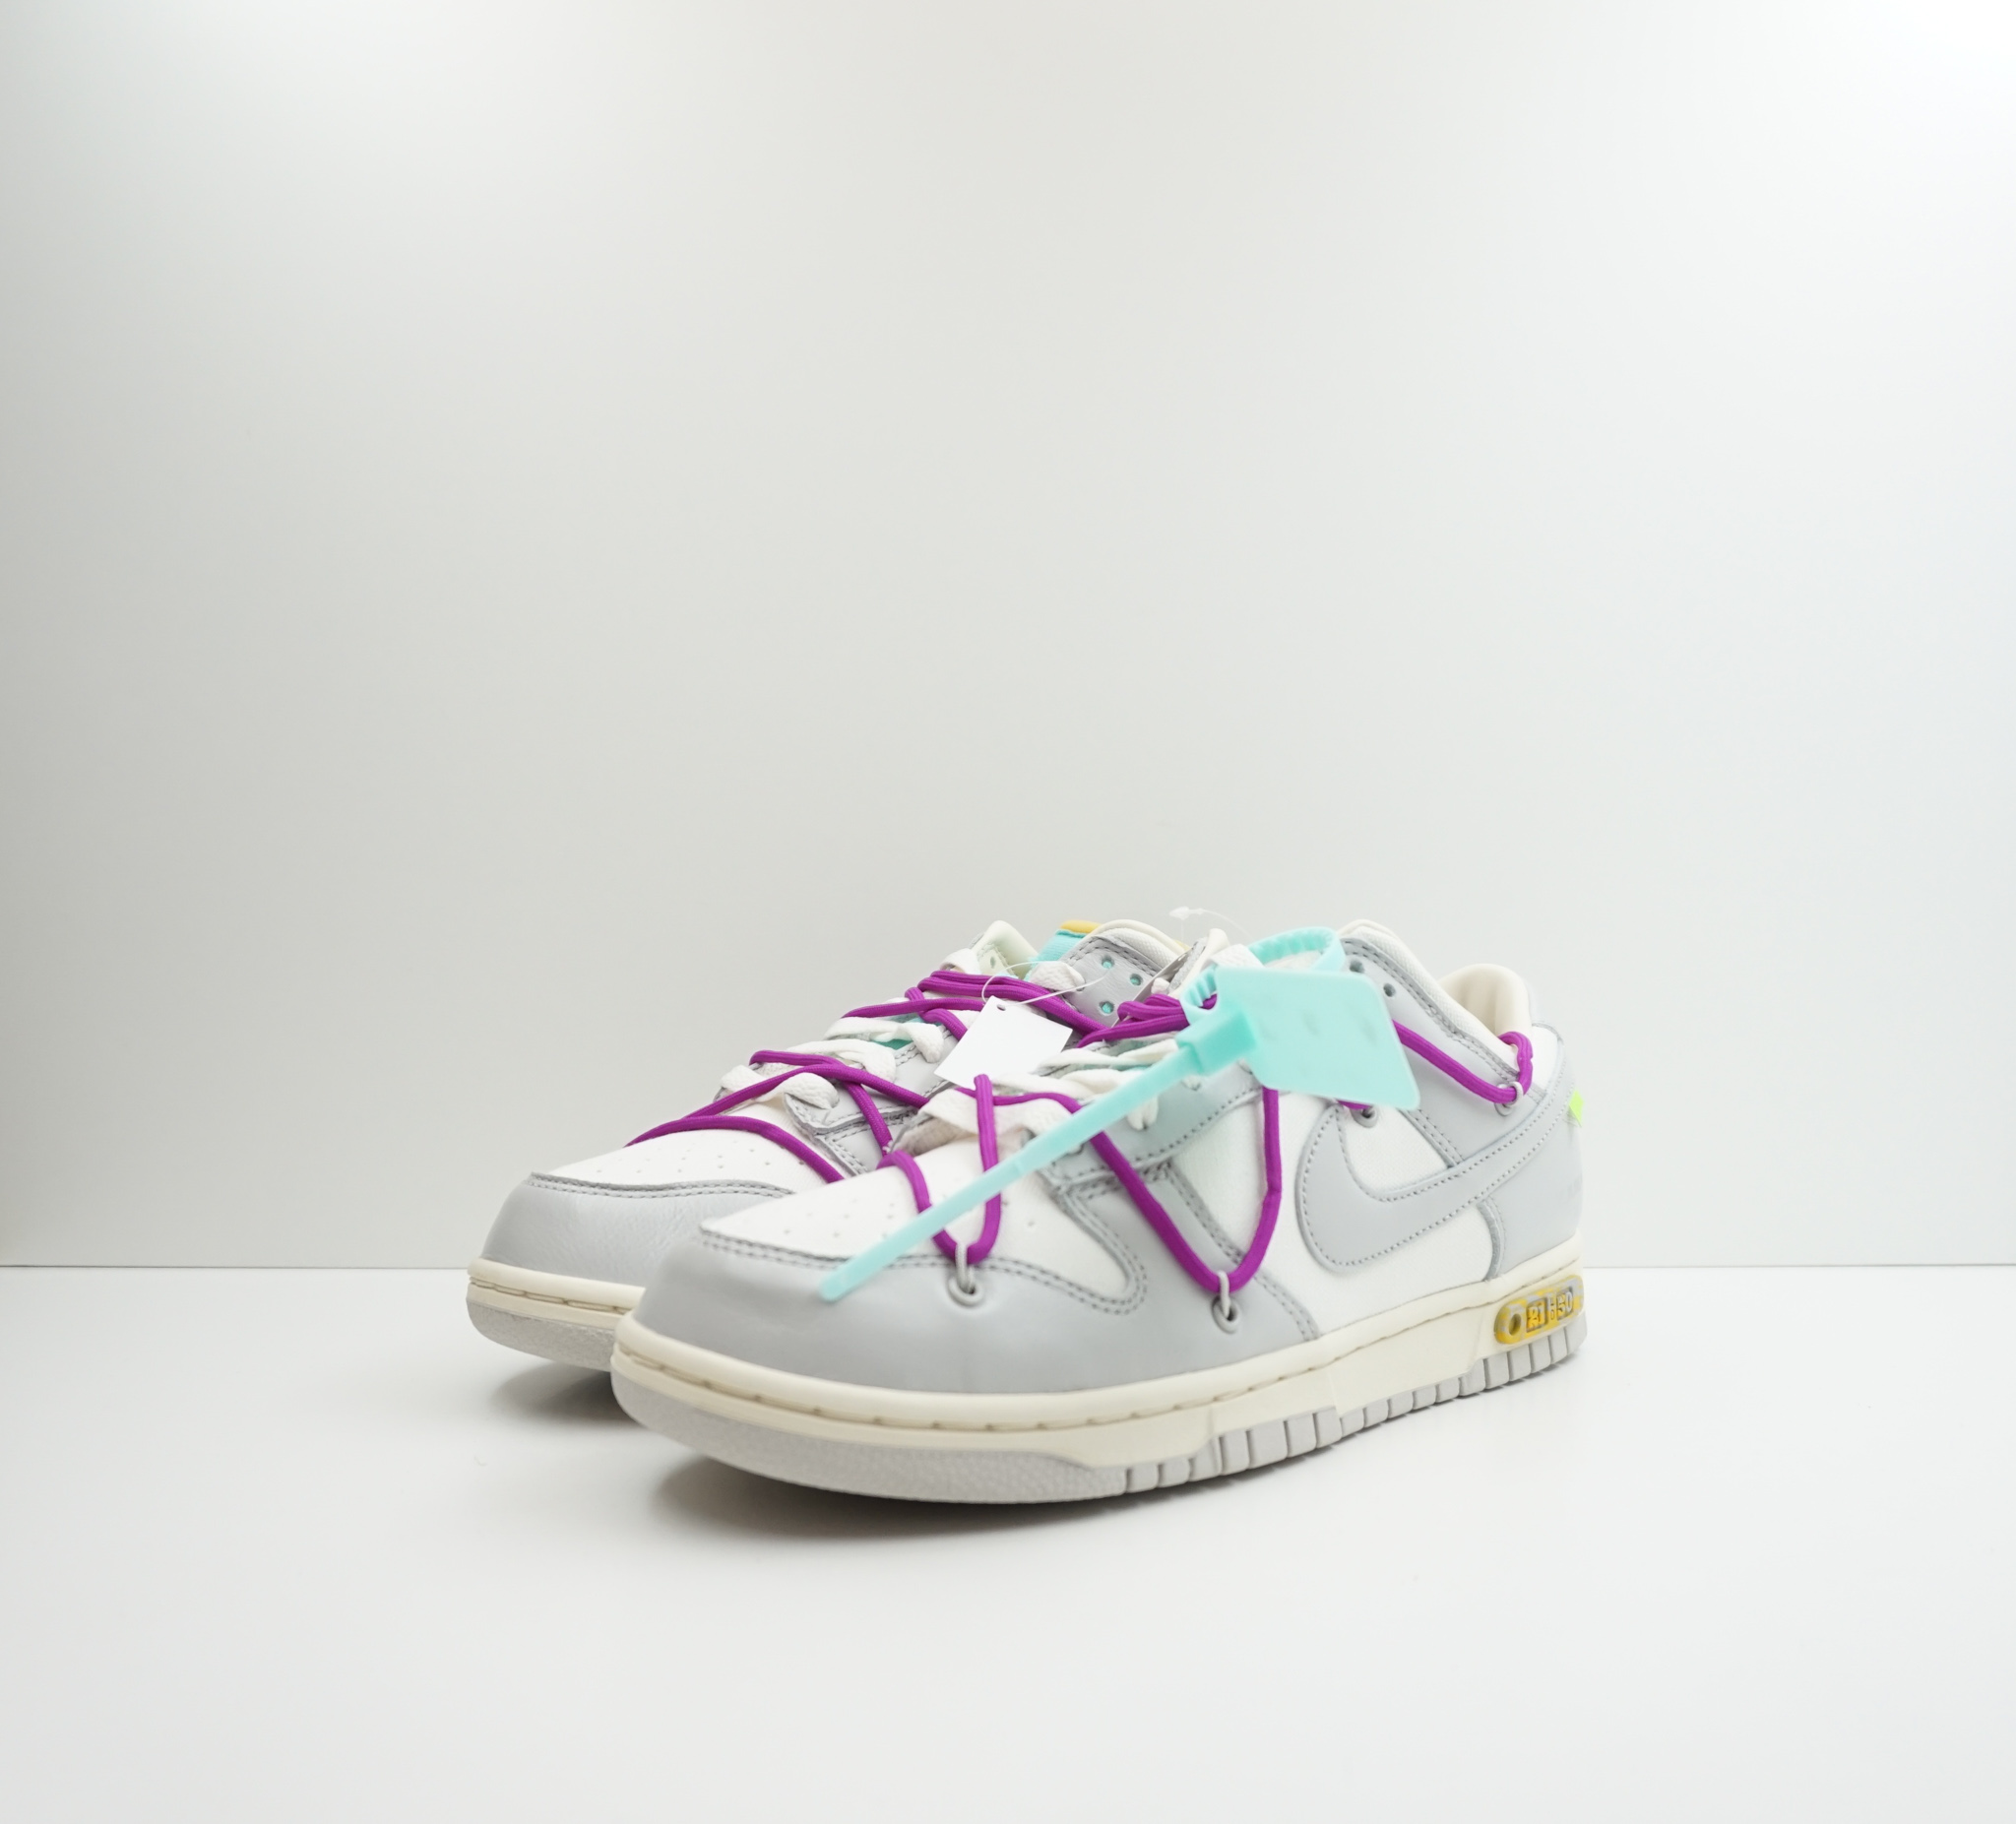 Nike Dunk Low Off White Lot 21